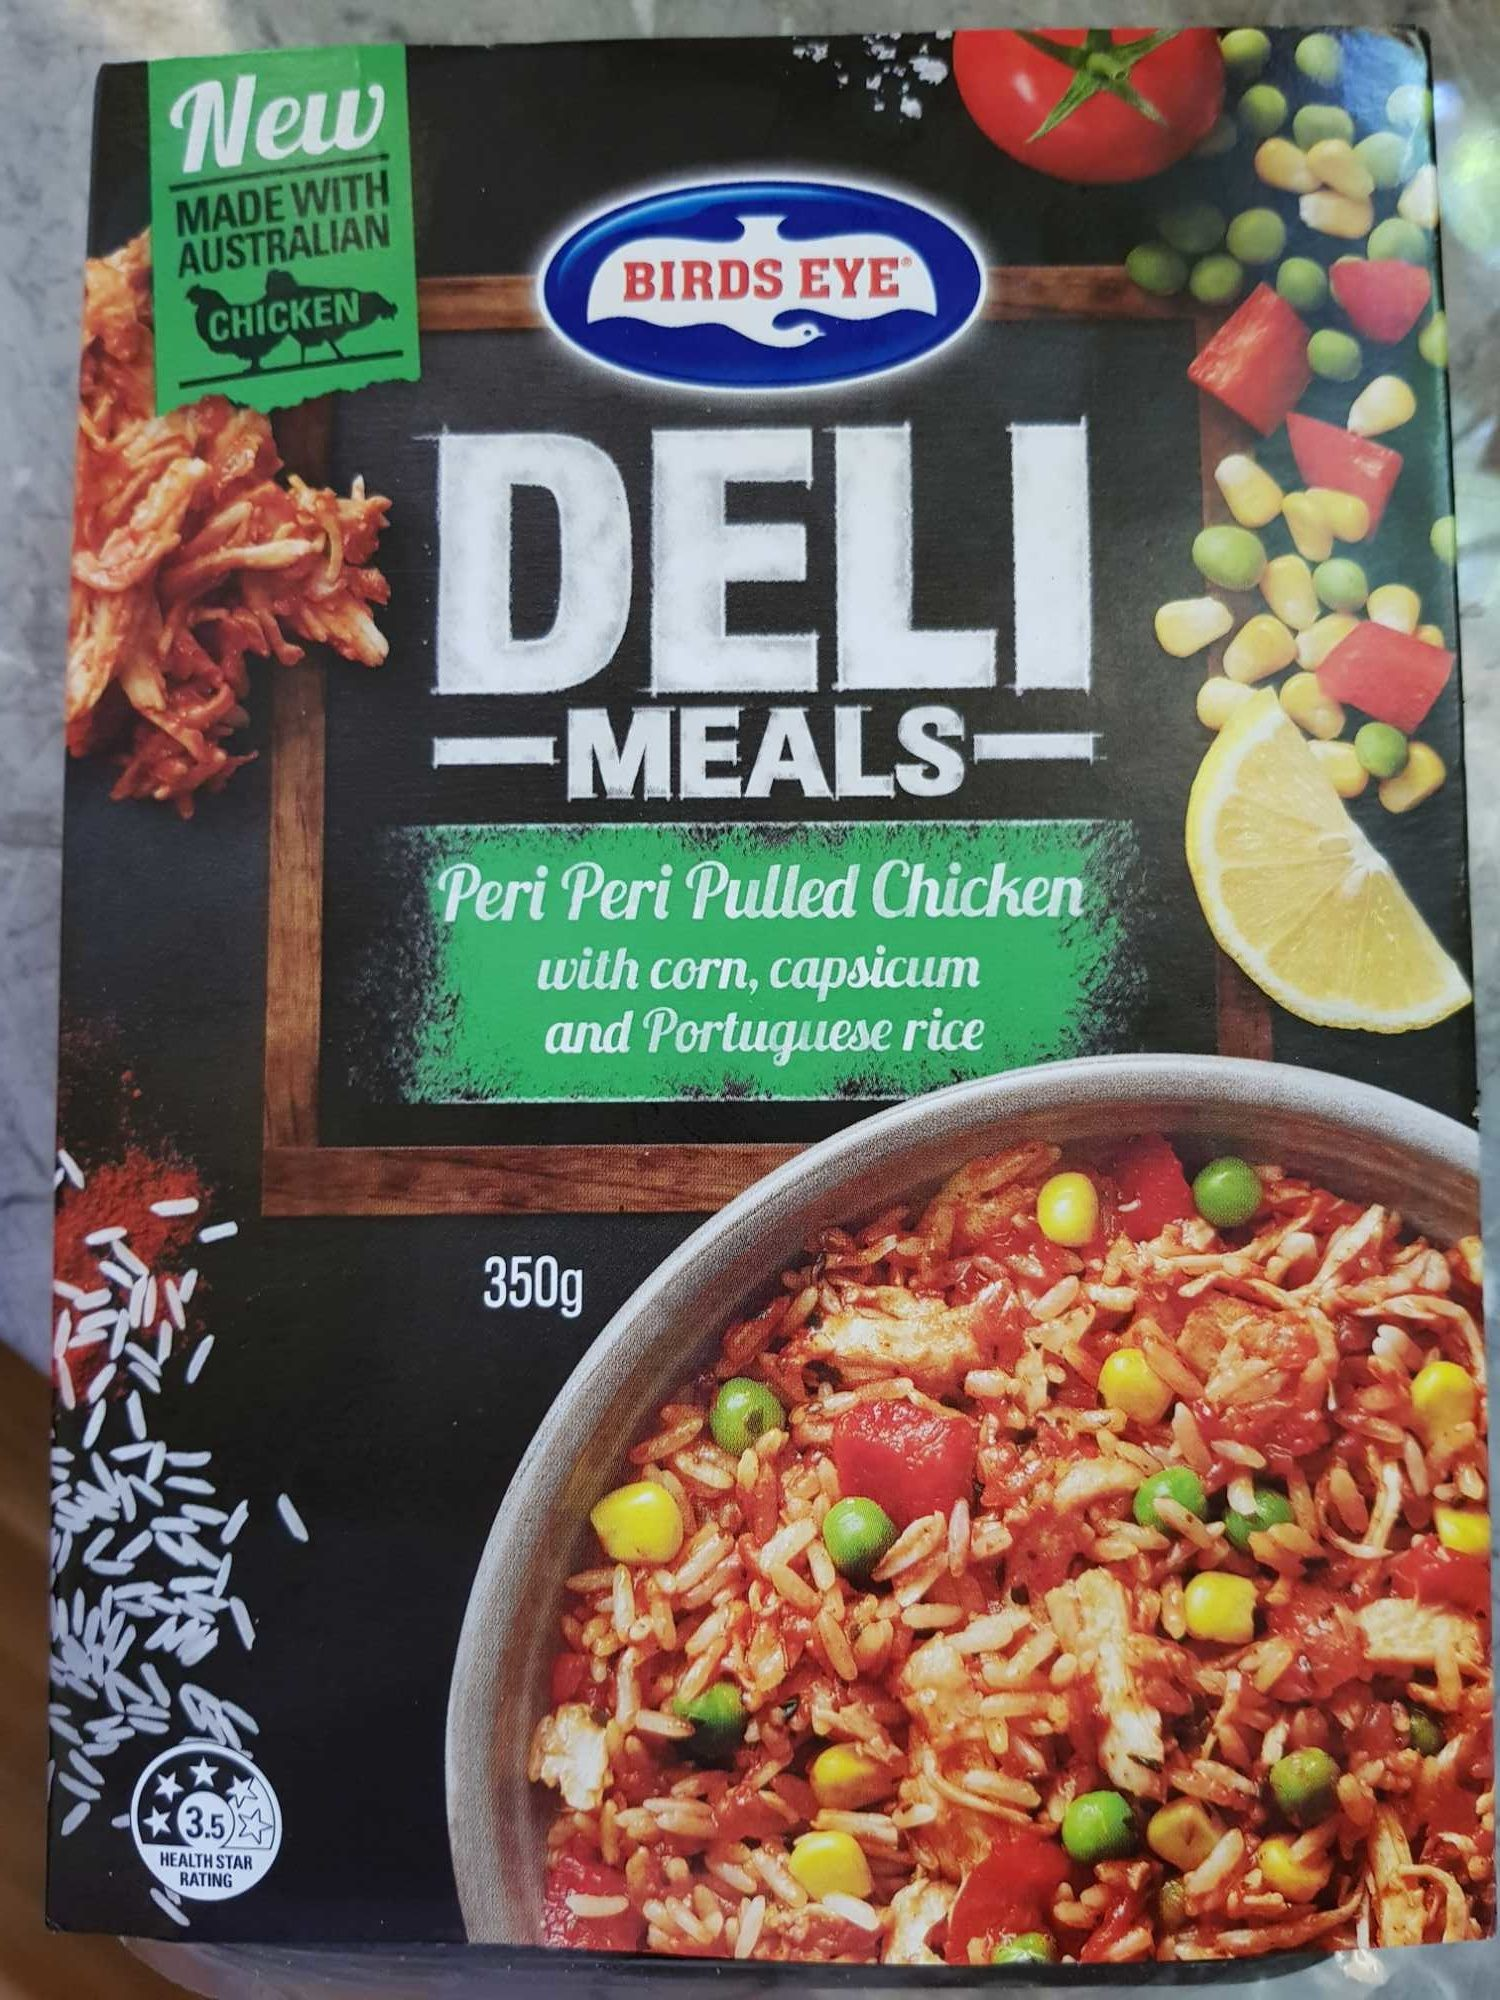 Birds Eye Deli Choices Peri Peri Pulled Chicken with Corn, Capscicum and Portuguese Rice - Product